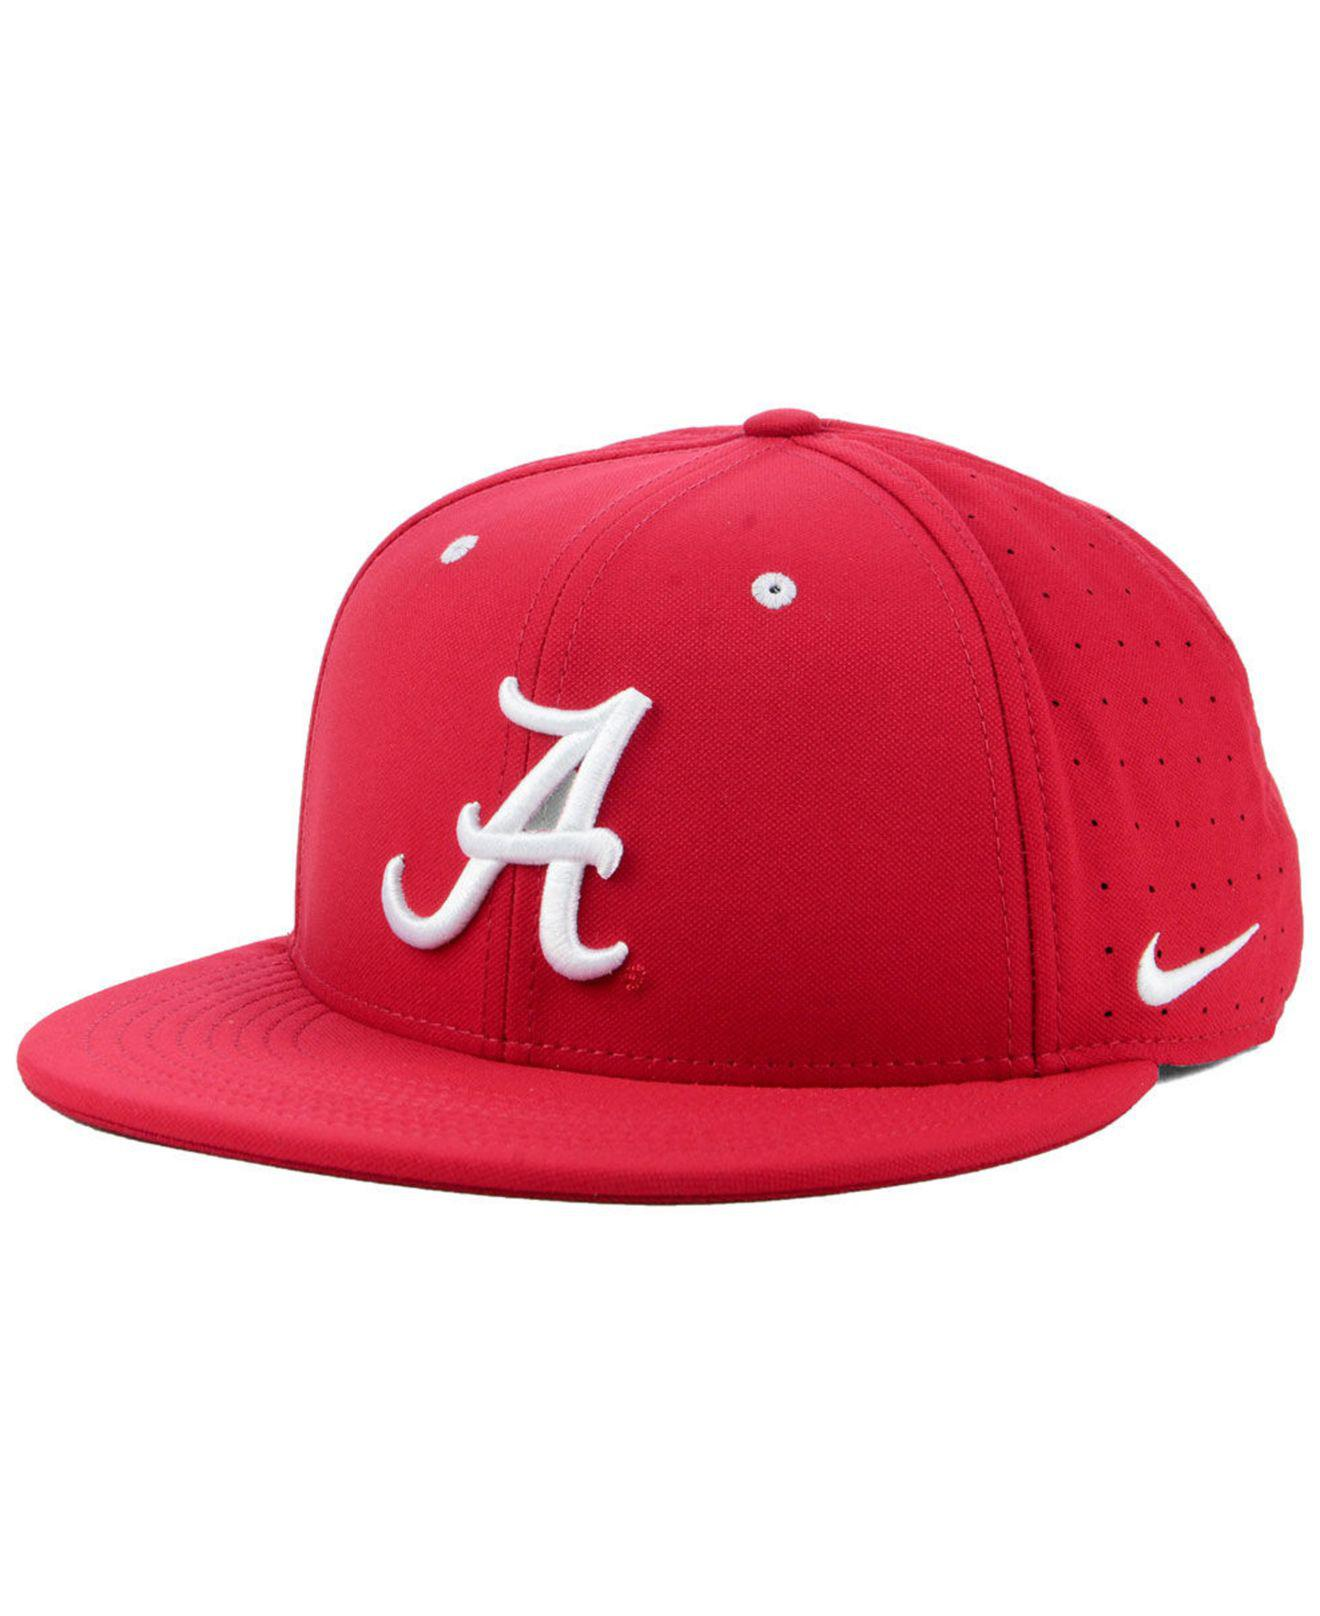 low priced 908c0 697c9 ... authentic nike. mens red alabama crimson tide aerobill true fitted baseball  cap 78109 875b9